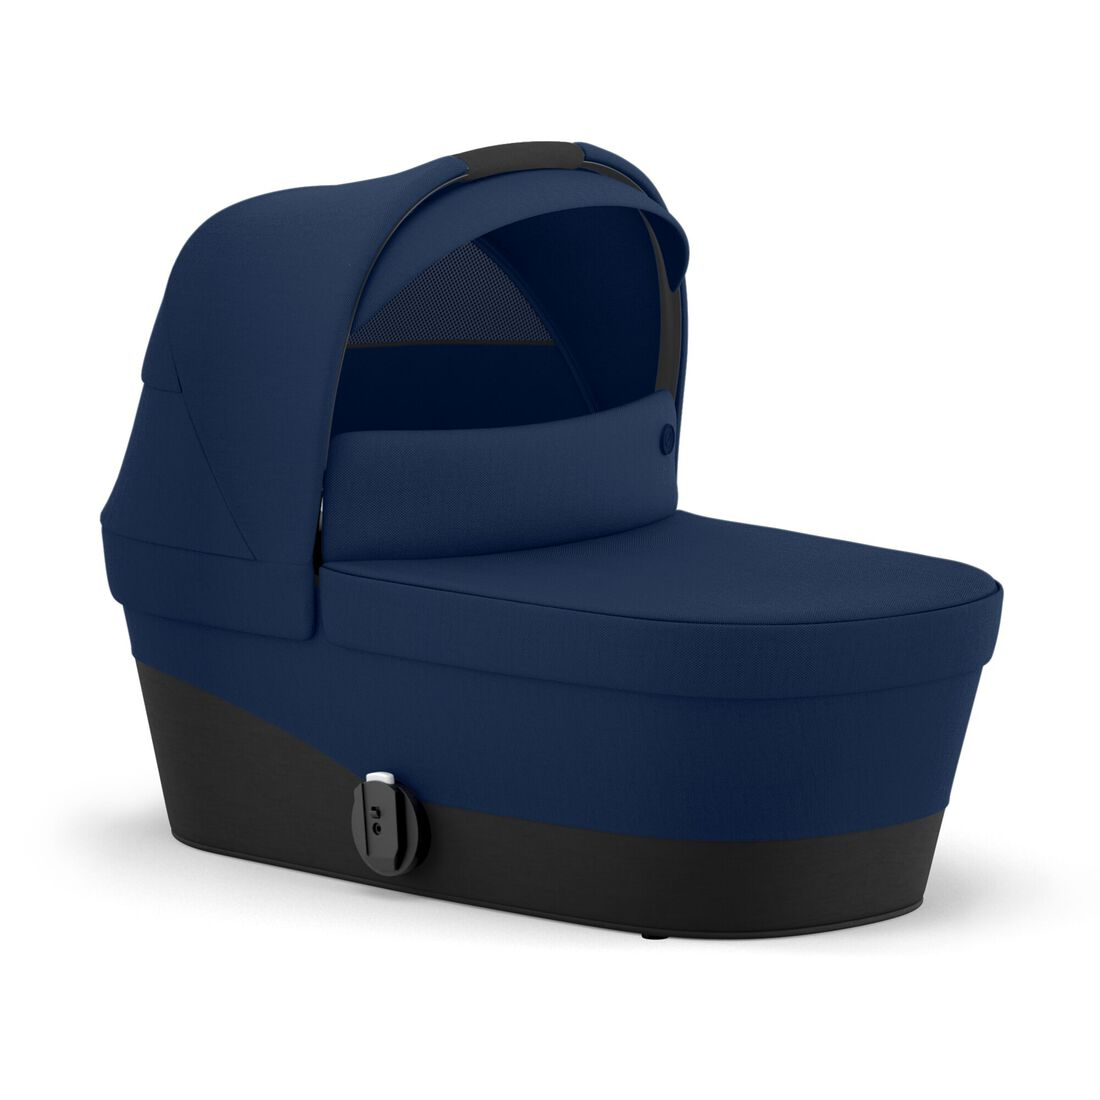 CYBEX Gazelle S Cot - Navy Blue in Navy Blue large image number 1